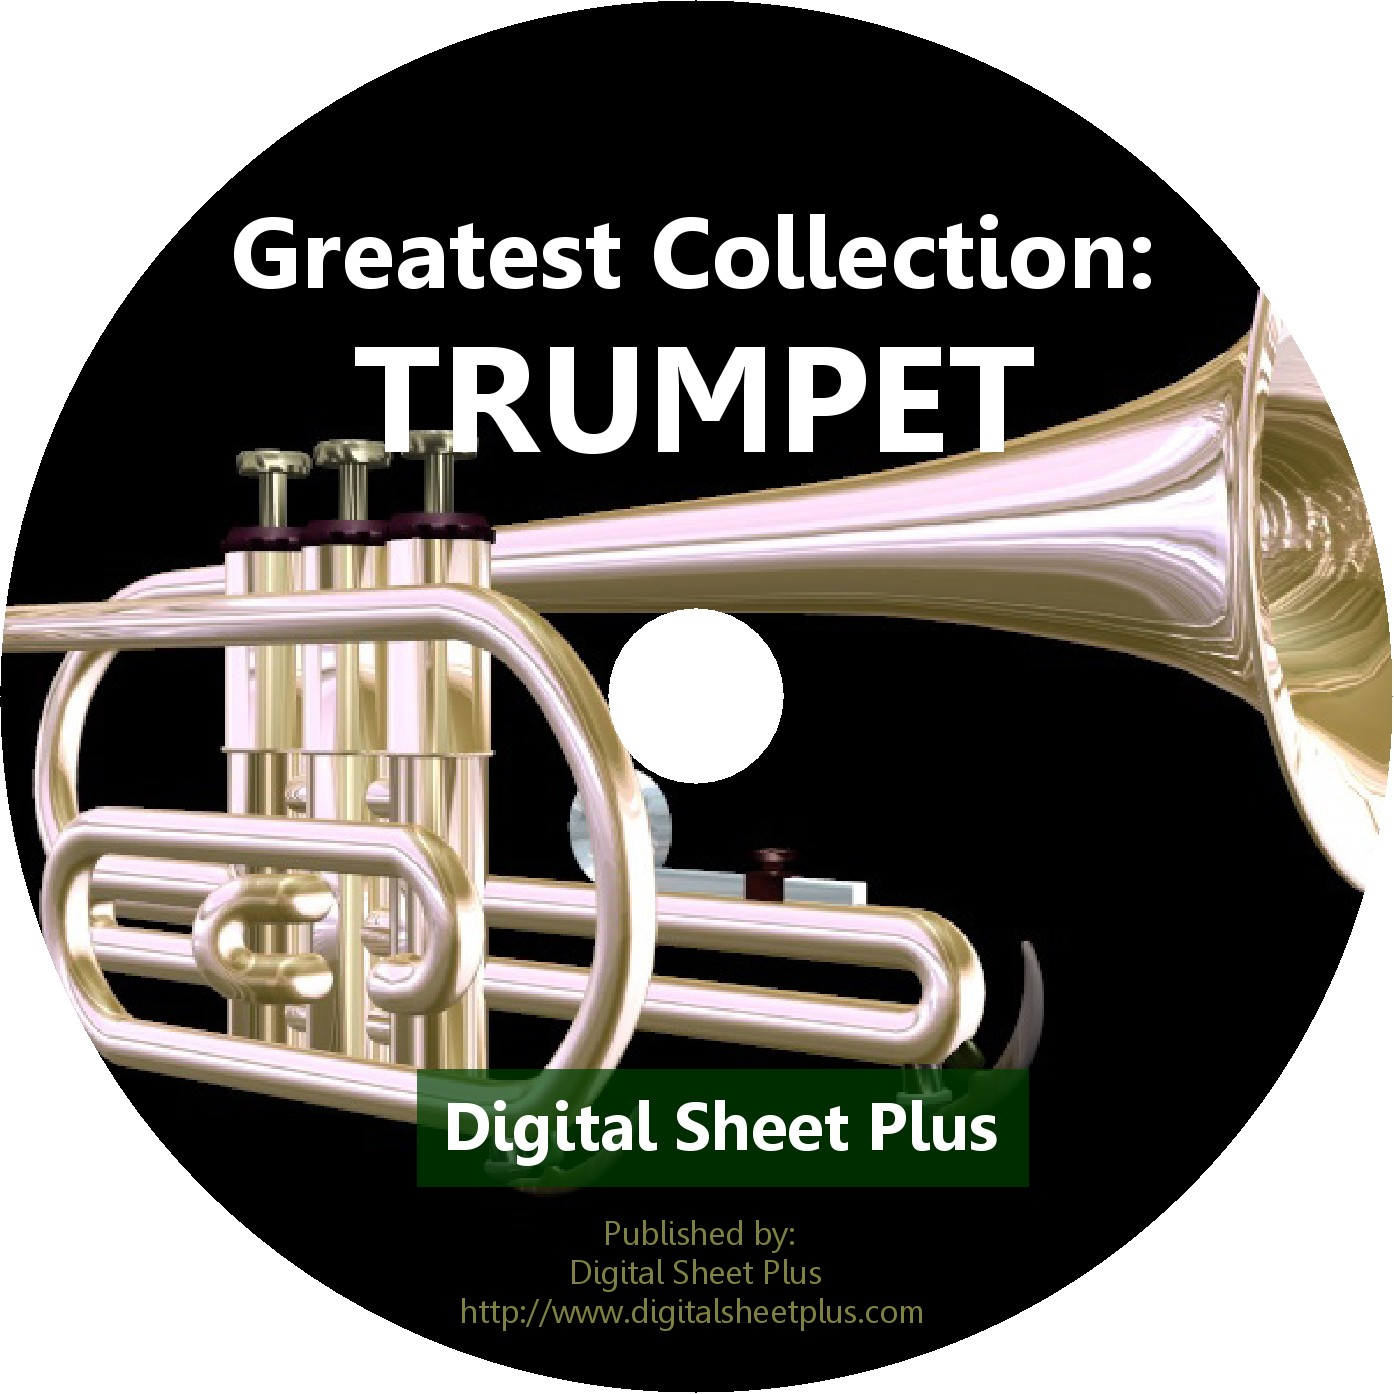 greatest_collection_TRUMPET_cd_cover.jpg